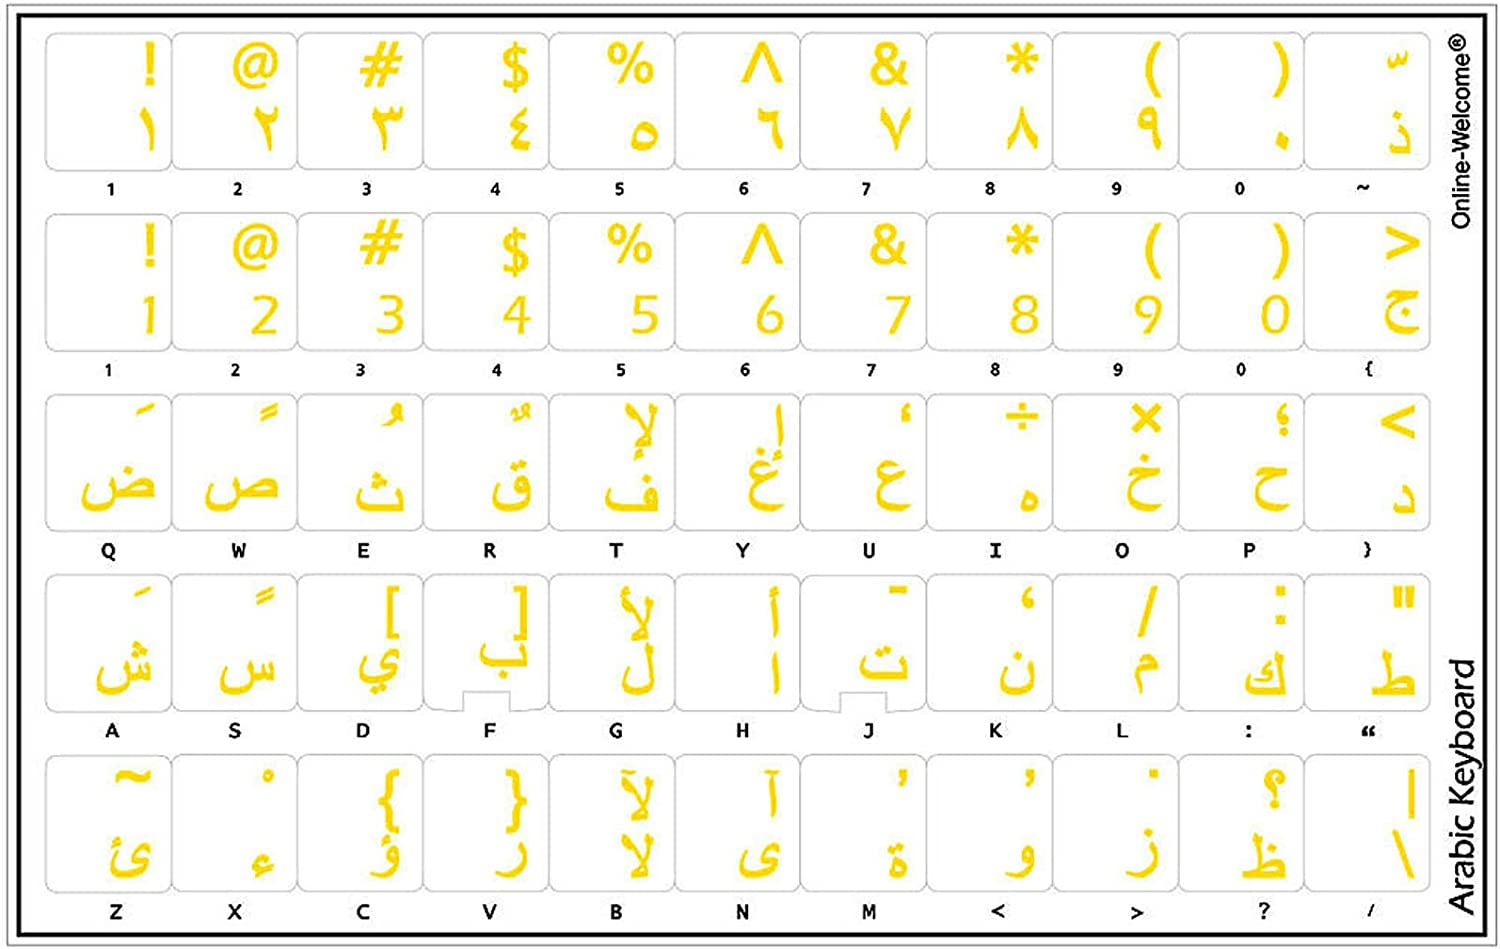 Online-Welcome Arabic Keyboard Stickers Transparent Yellow Letters for Any Laptop Computer PC Desktop Notebook